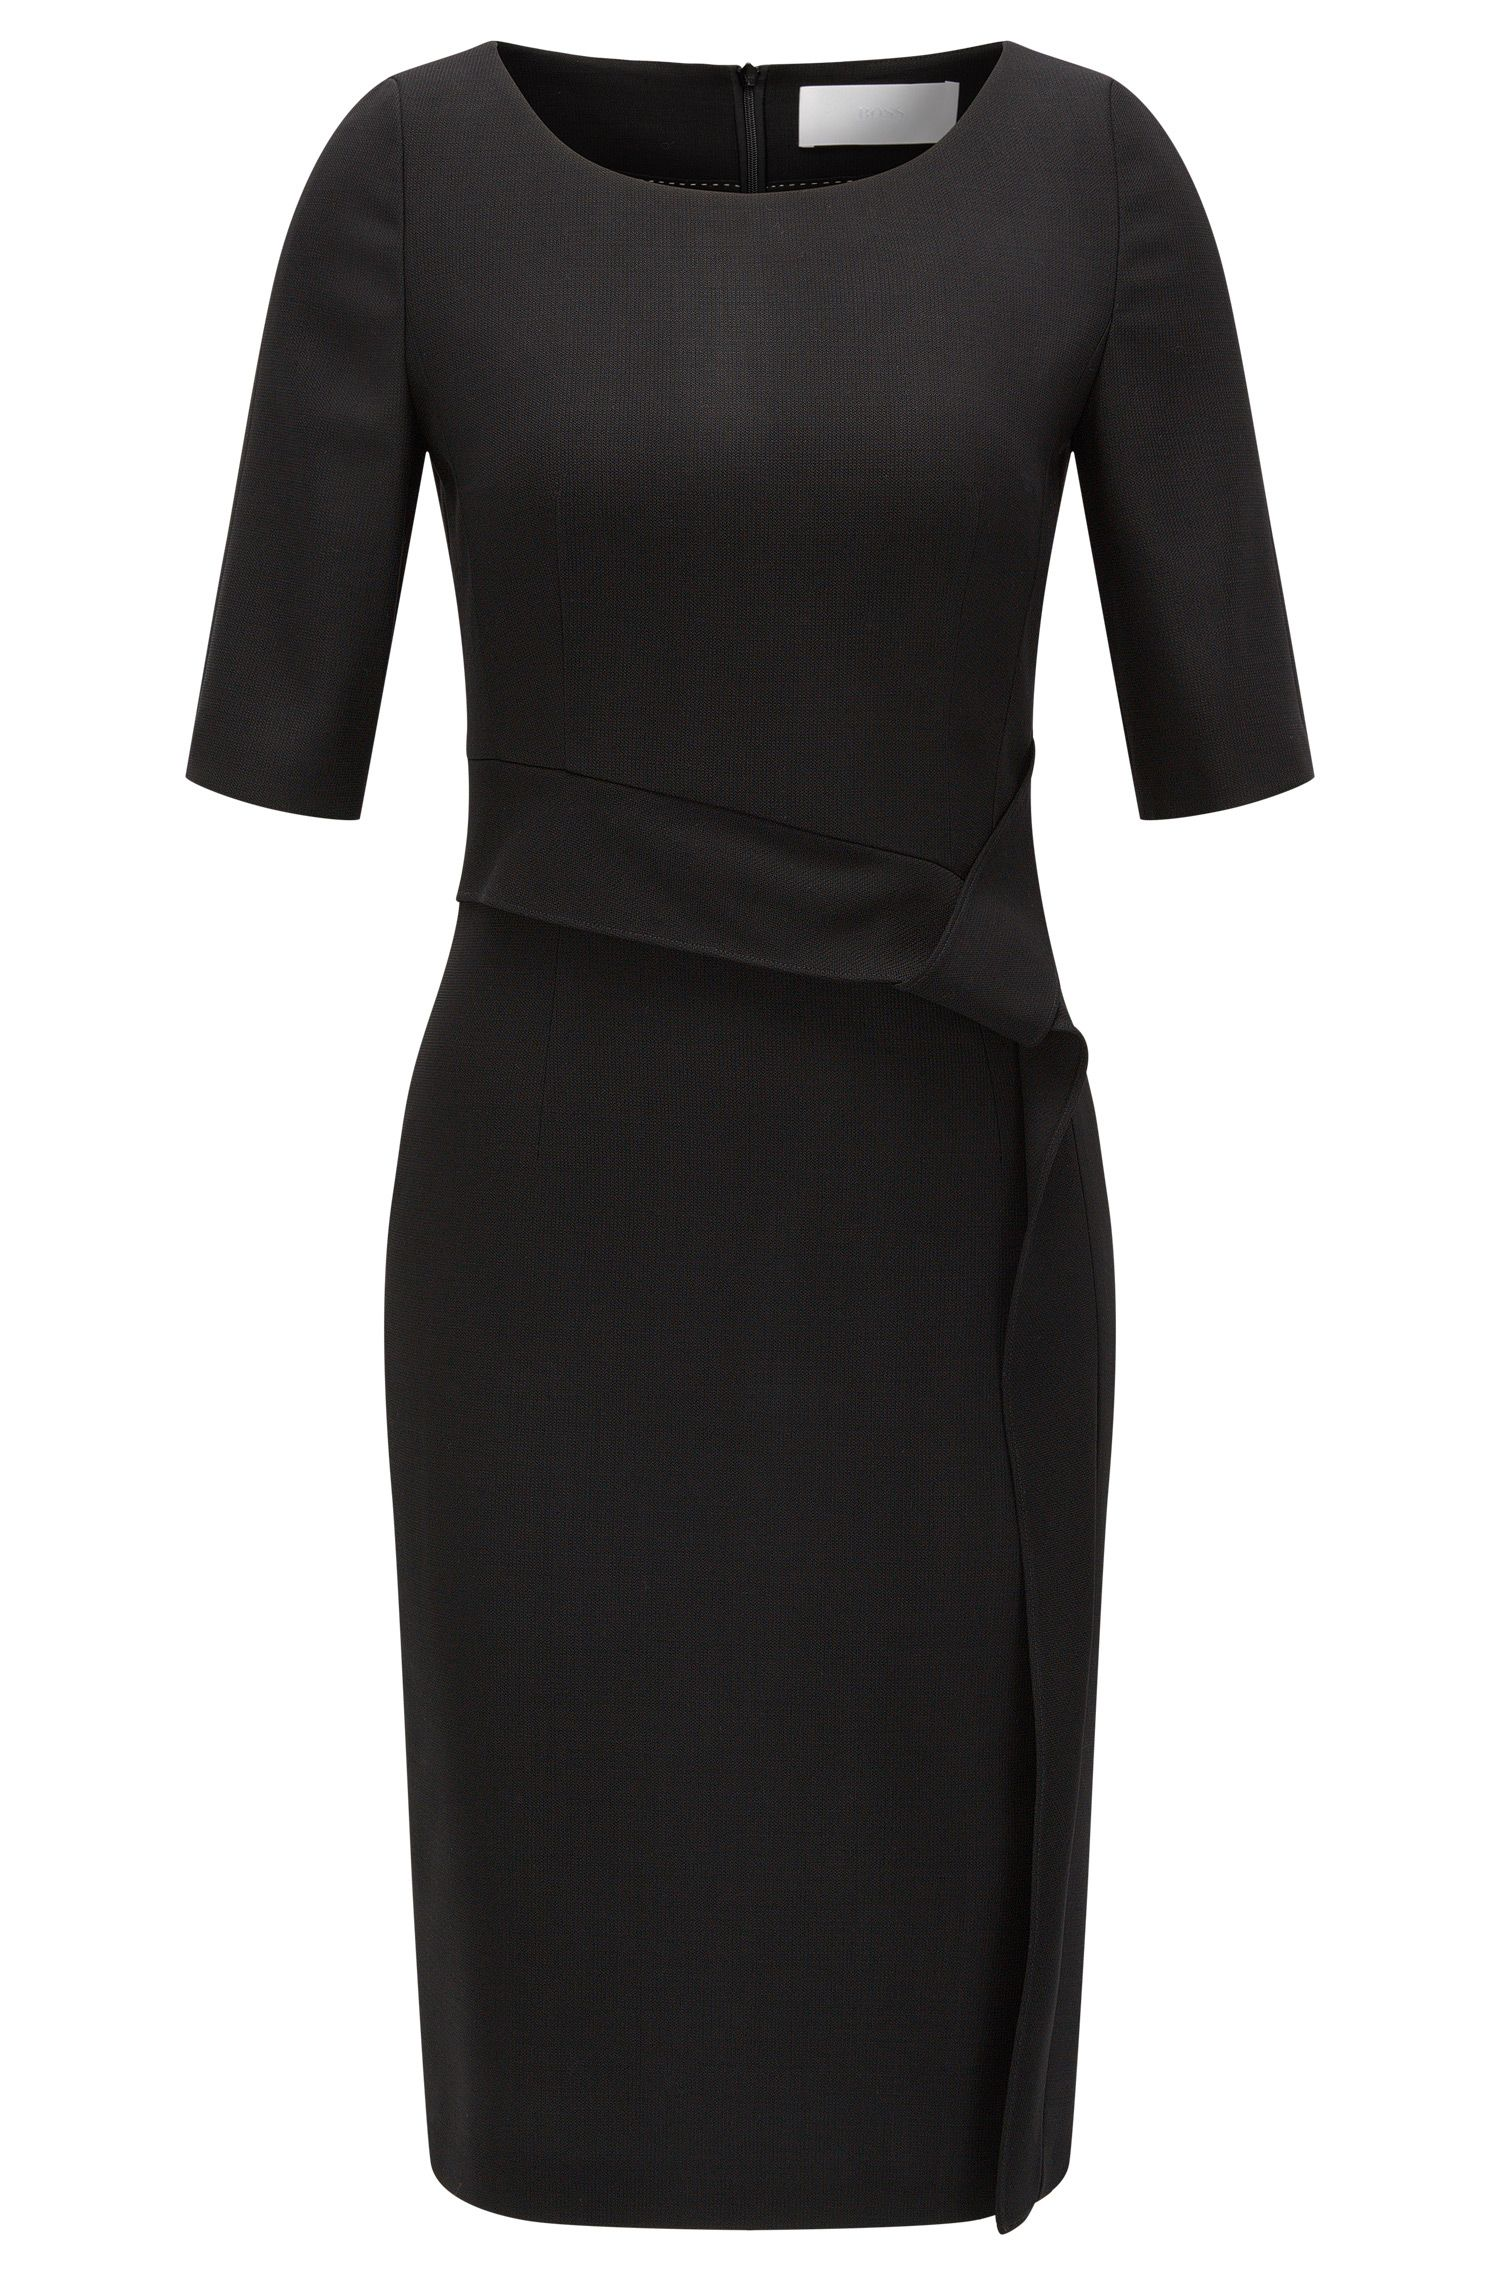 Virgin Wool Blend Asymmetrical Sheath Dress | Delera